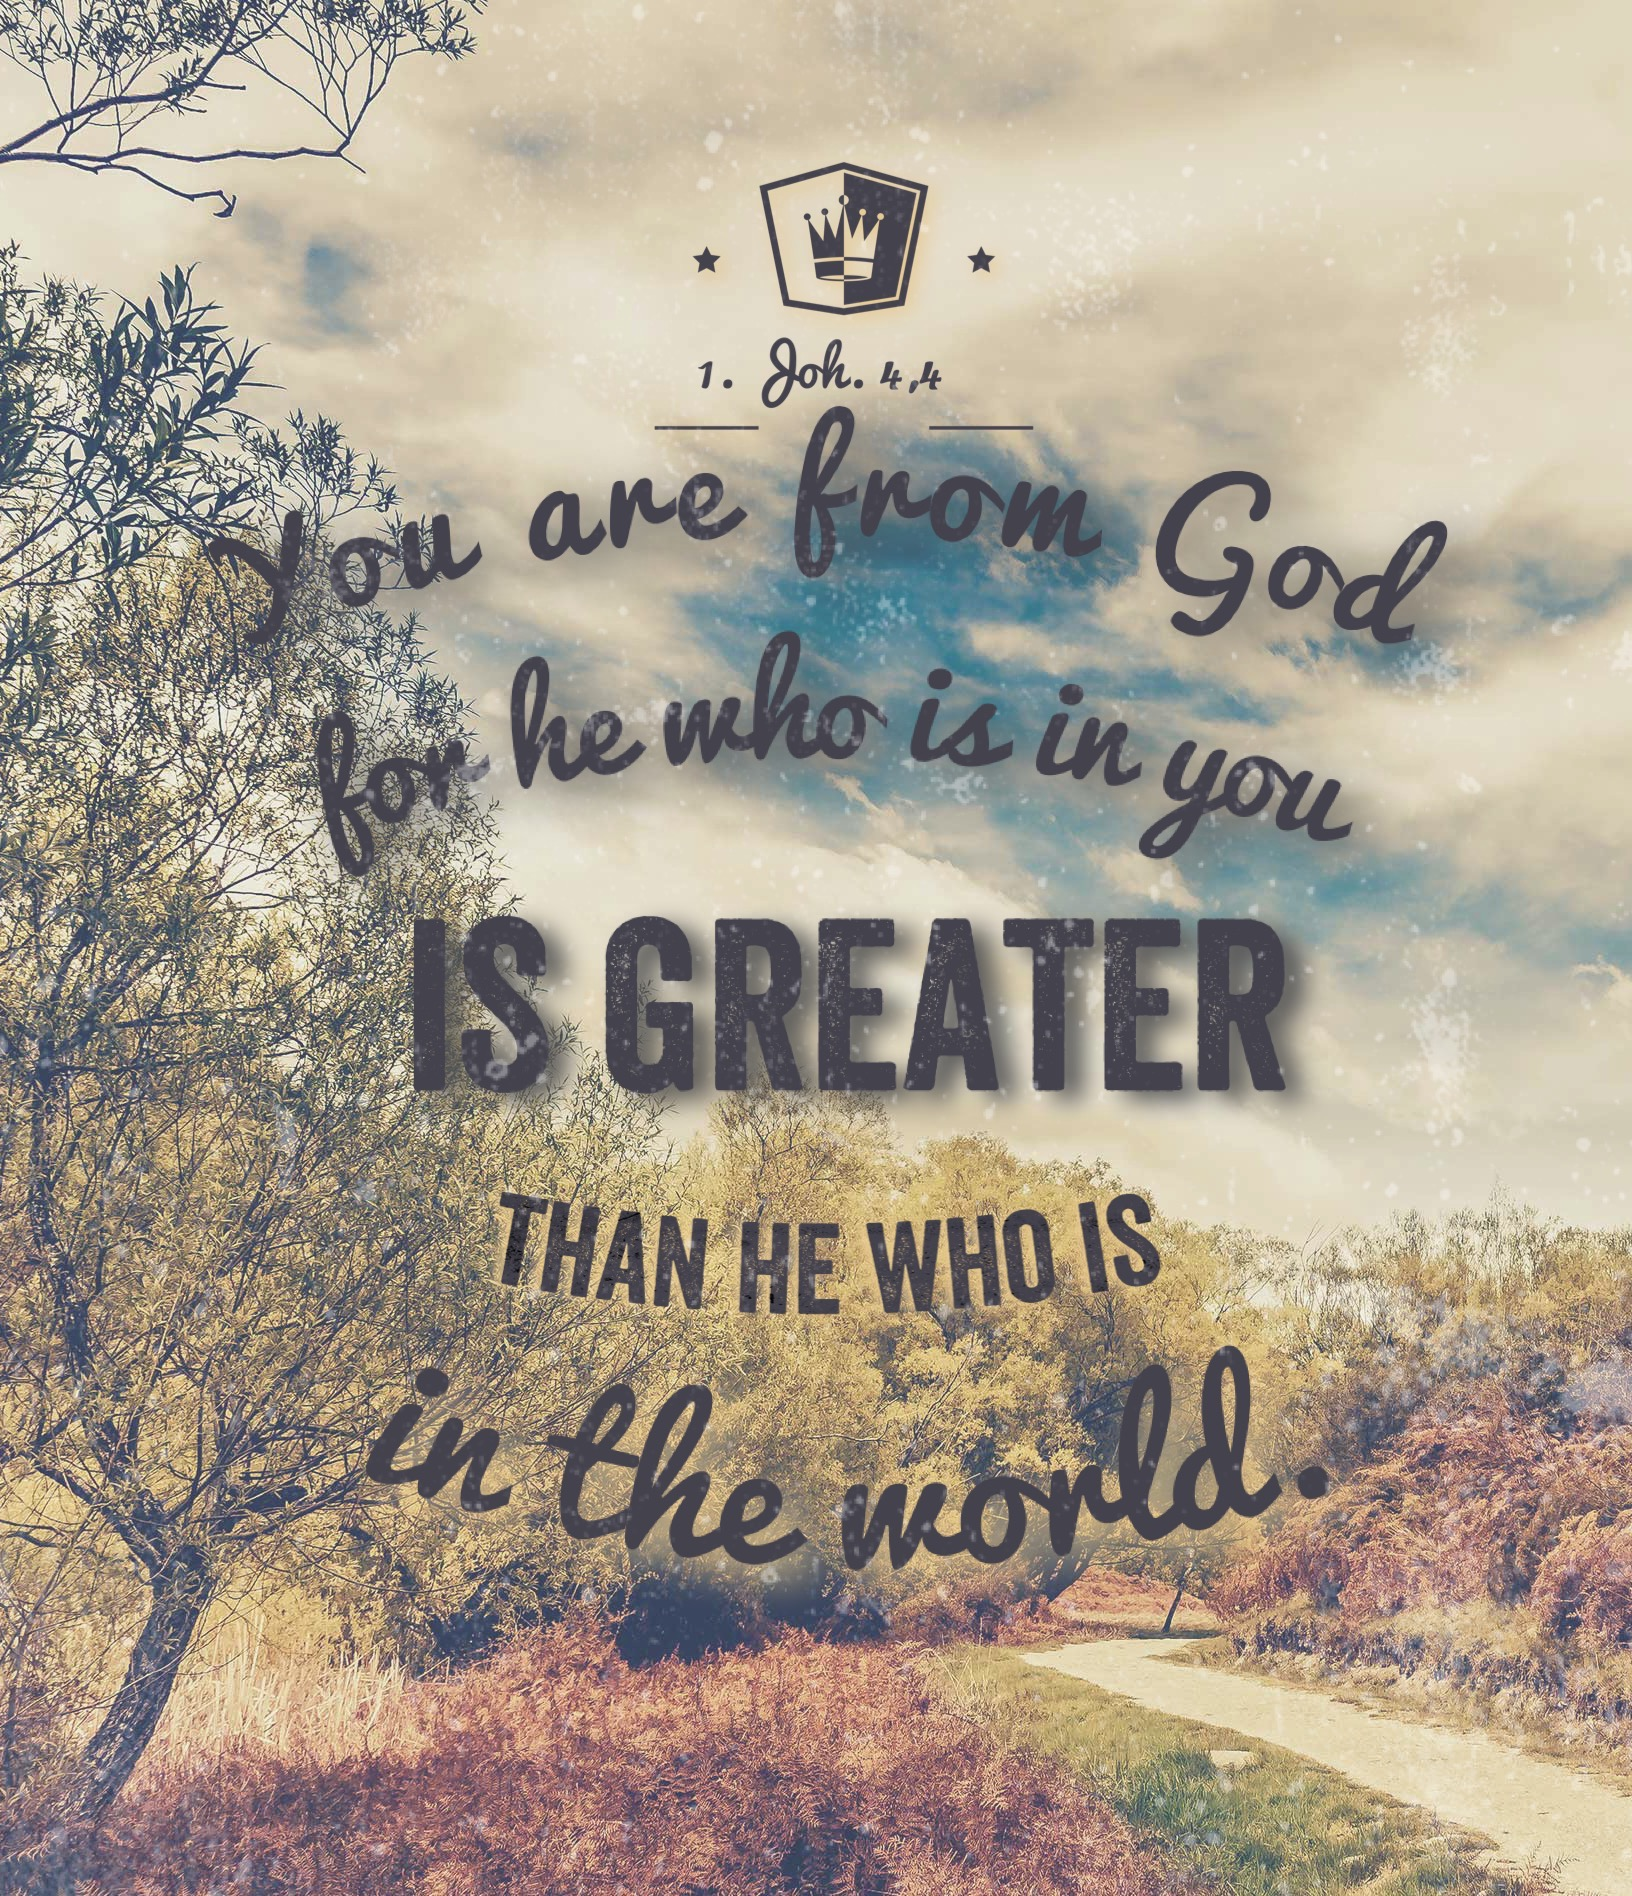 He is Greater, than he who is